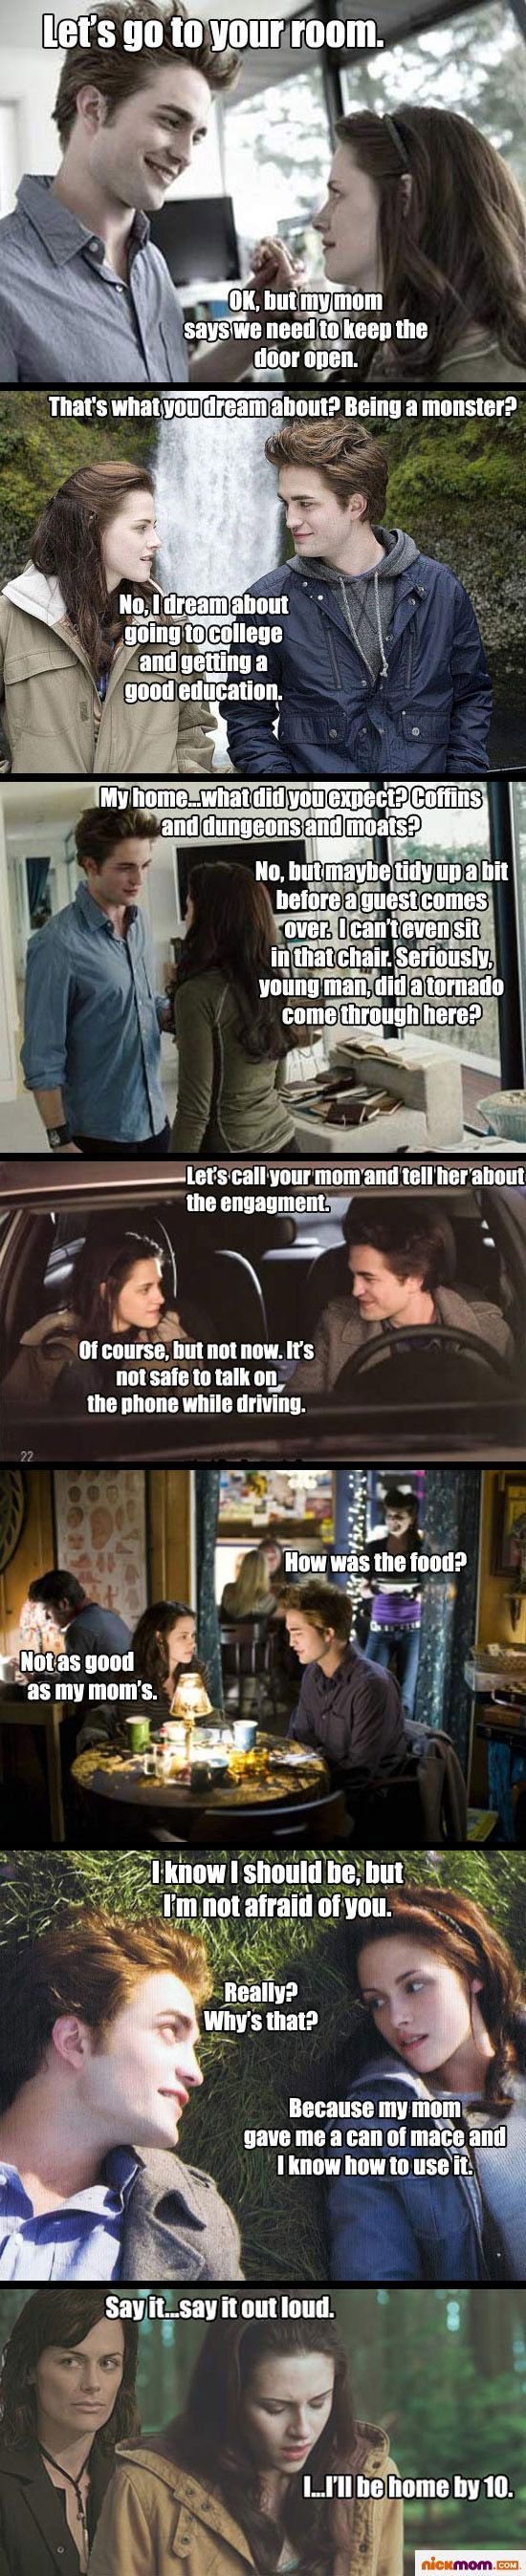 if twilight was written by an average mom....because anything would be an improvement at this point.